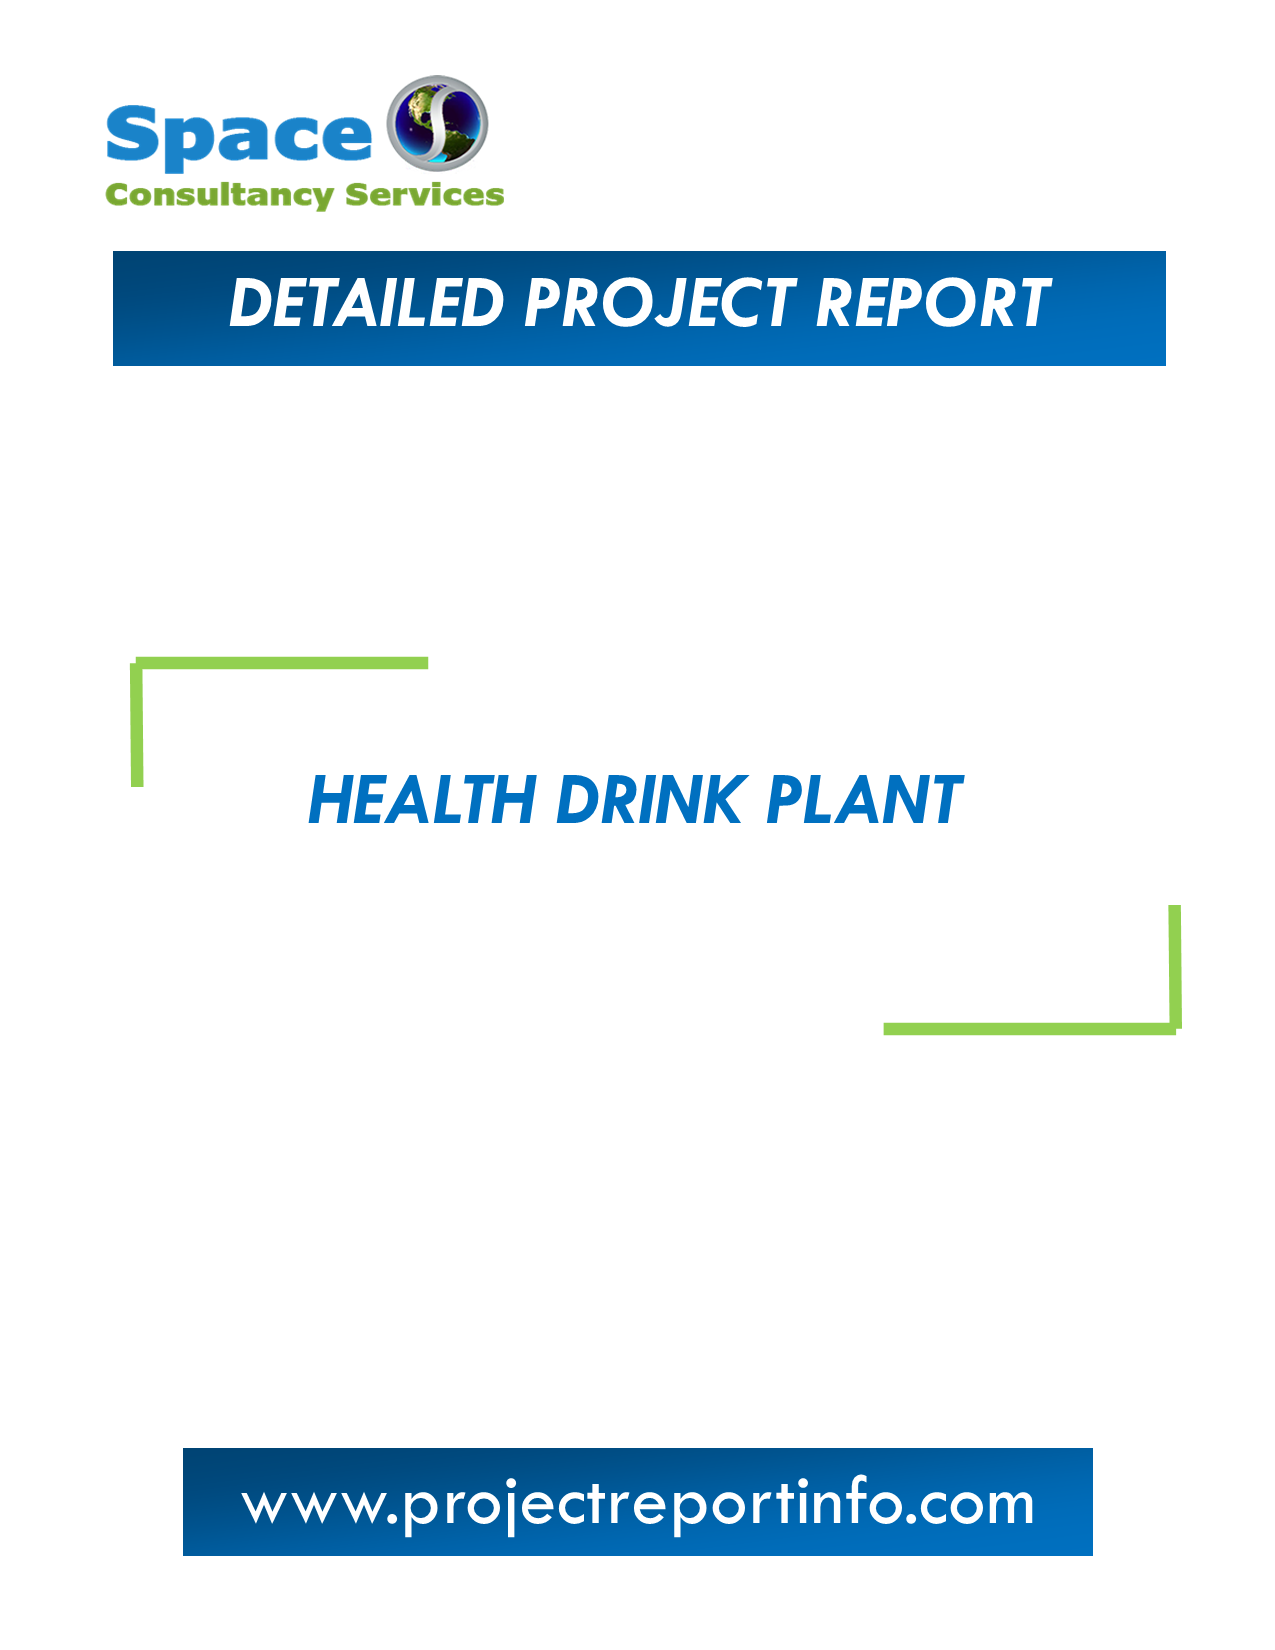 Project Report on Health Drink Plant